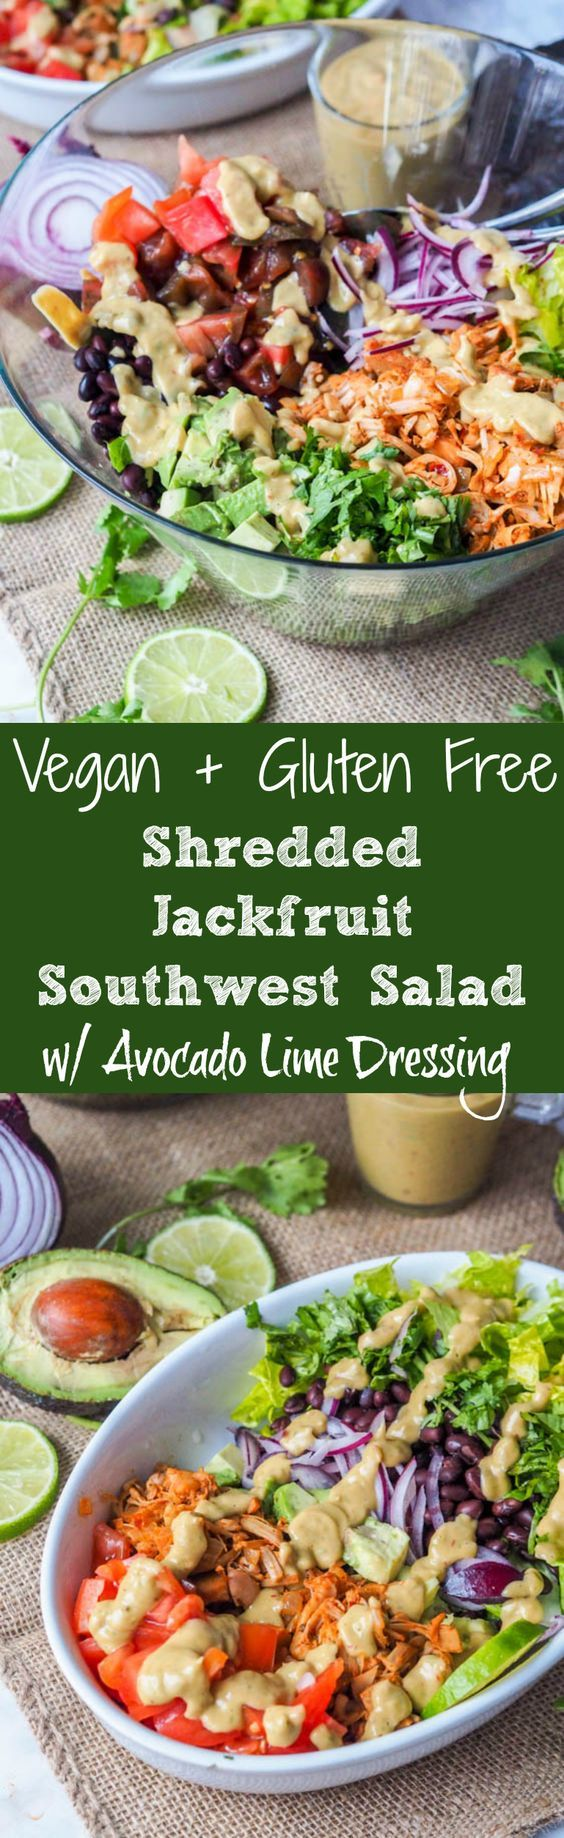 A super filling vegan and gluten free healthy and nutritious Southwest salad. This recipe calls for shredded jackfruit which makes a perfect plant based substitute for meat. This salad is packed full of vitamins and nutrients with romaine, tomatoes, red onions, avocado, black beans and a super-rich and creamy avocado lime based dressing. |avocadopesto.com #addavocado #LoveOneToday #ad